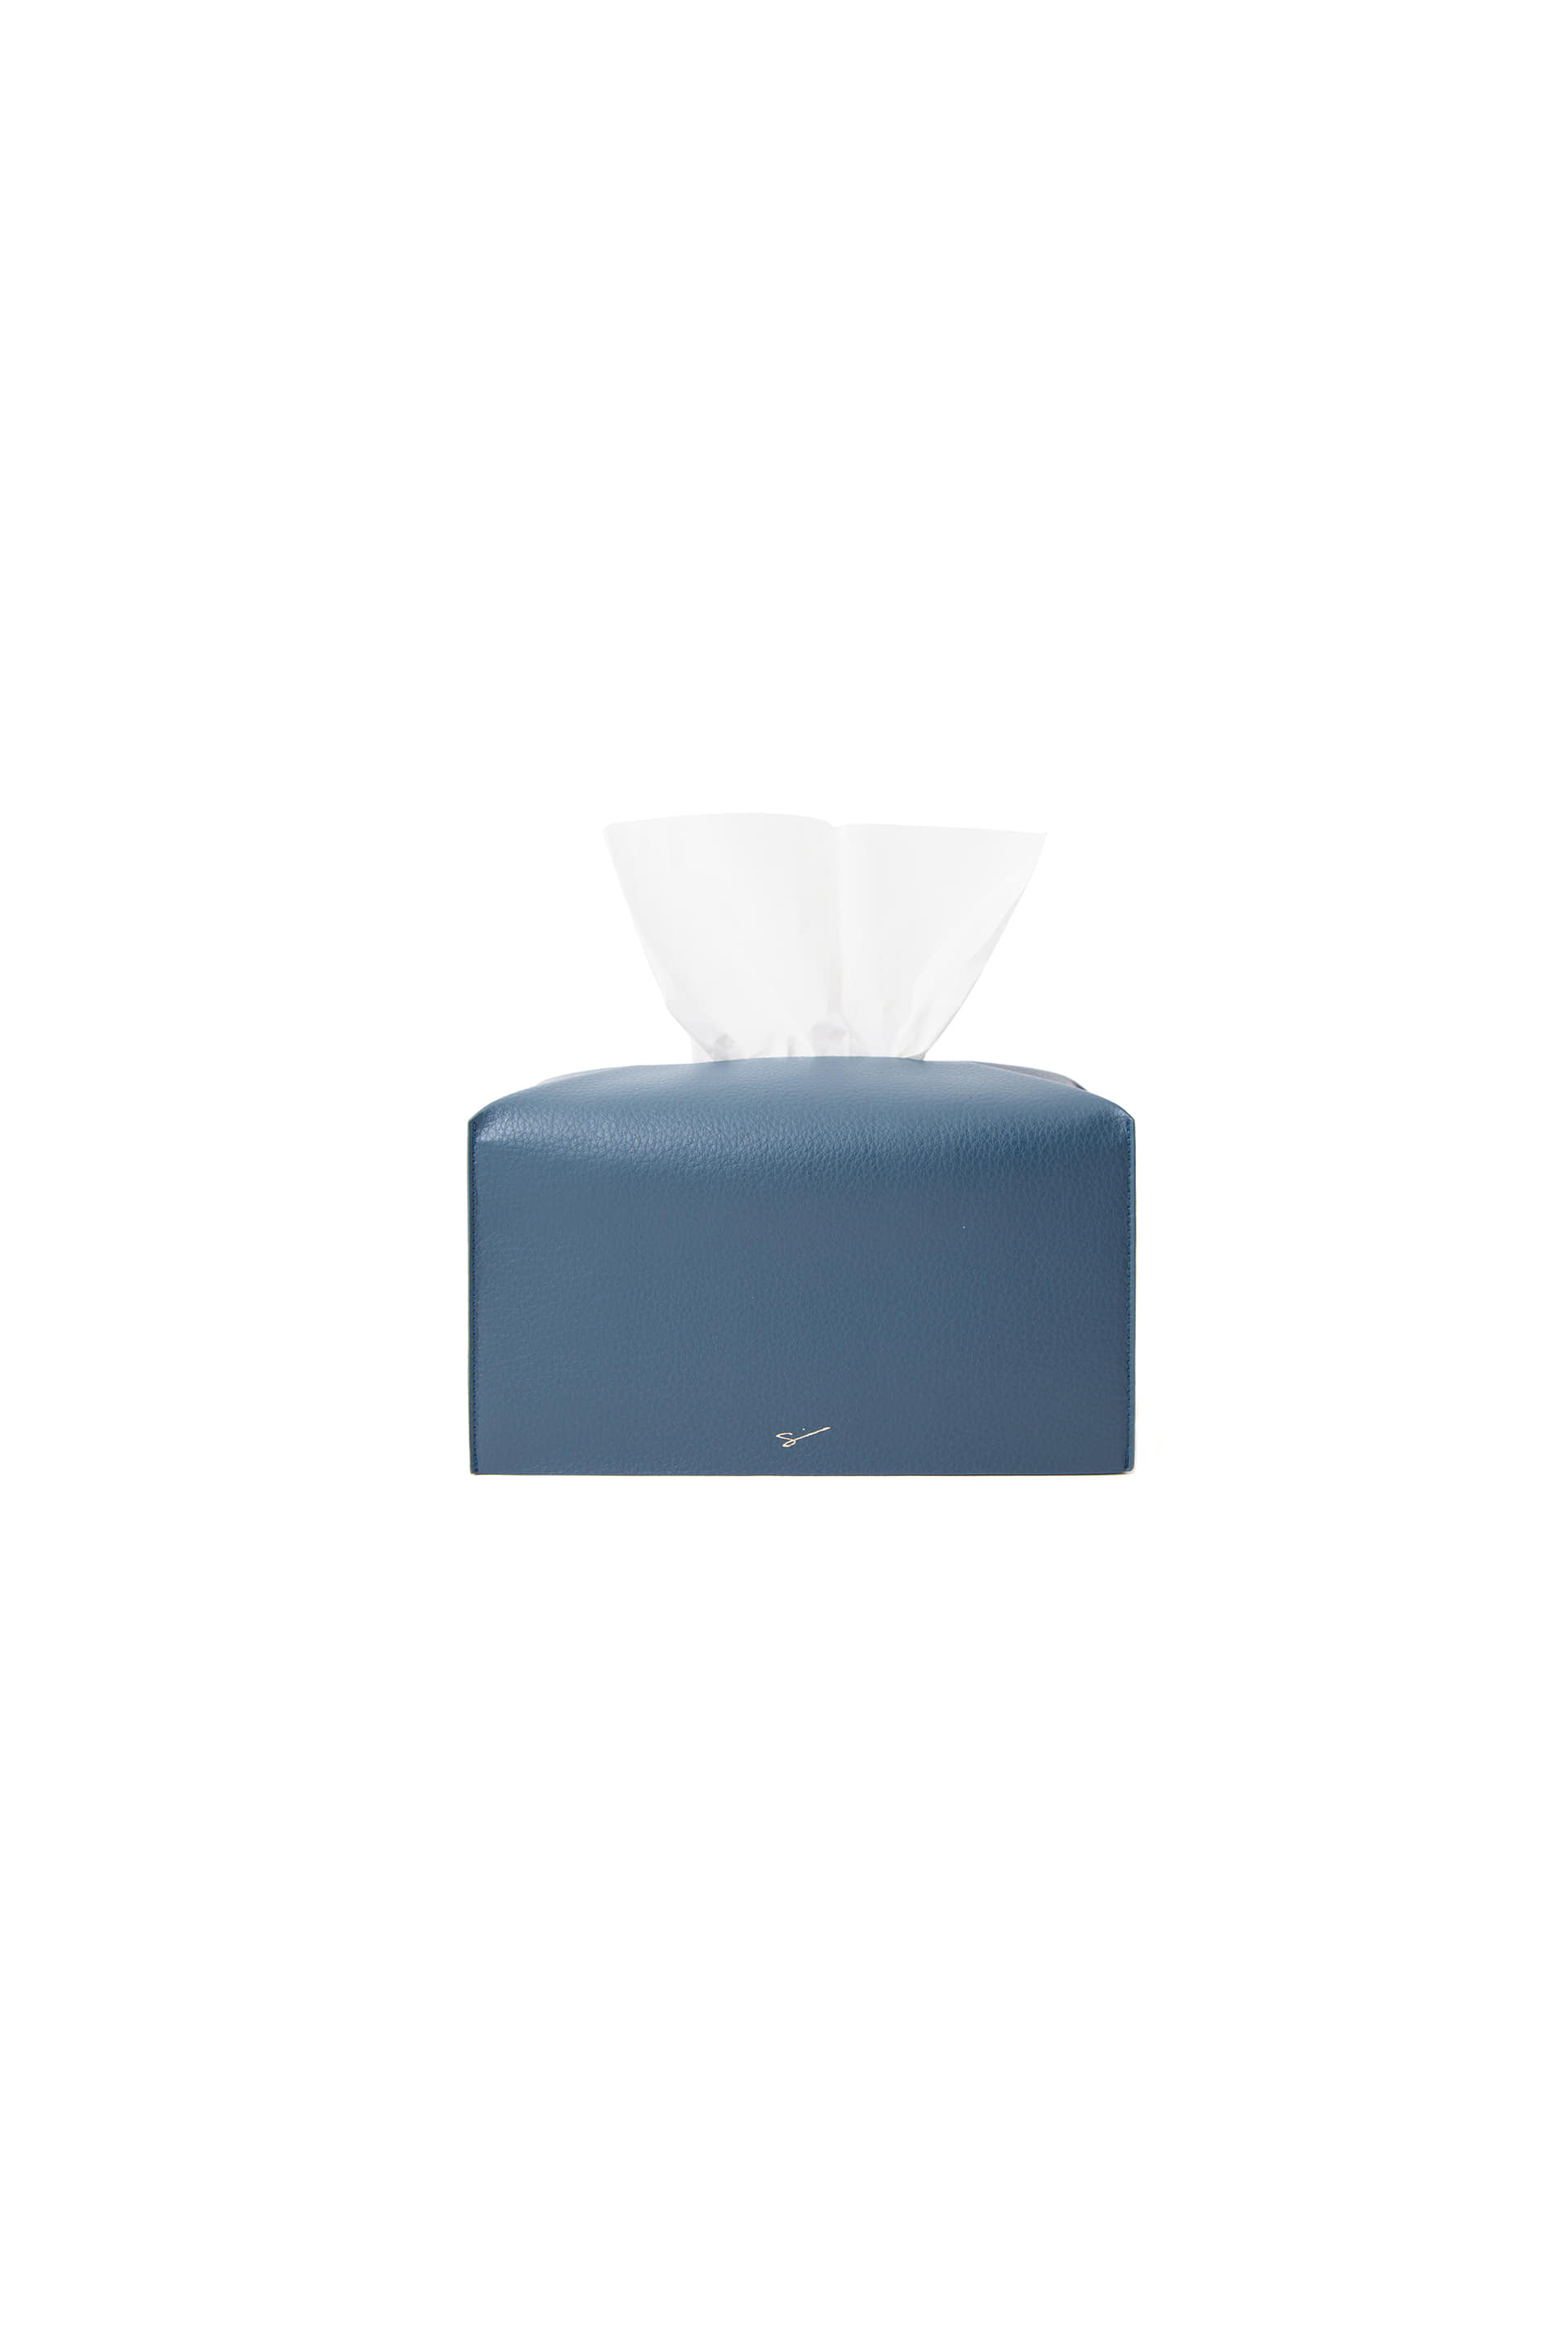 TISSUE CASE L 36 Mo Deep Blue